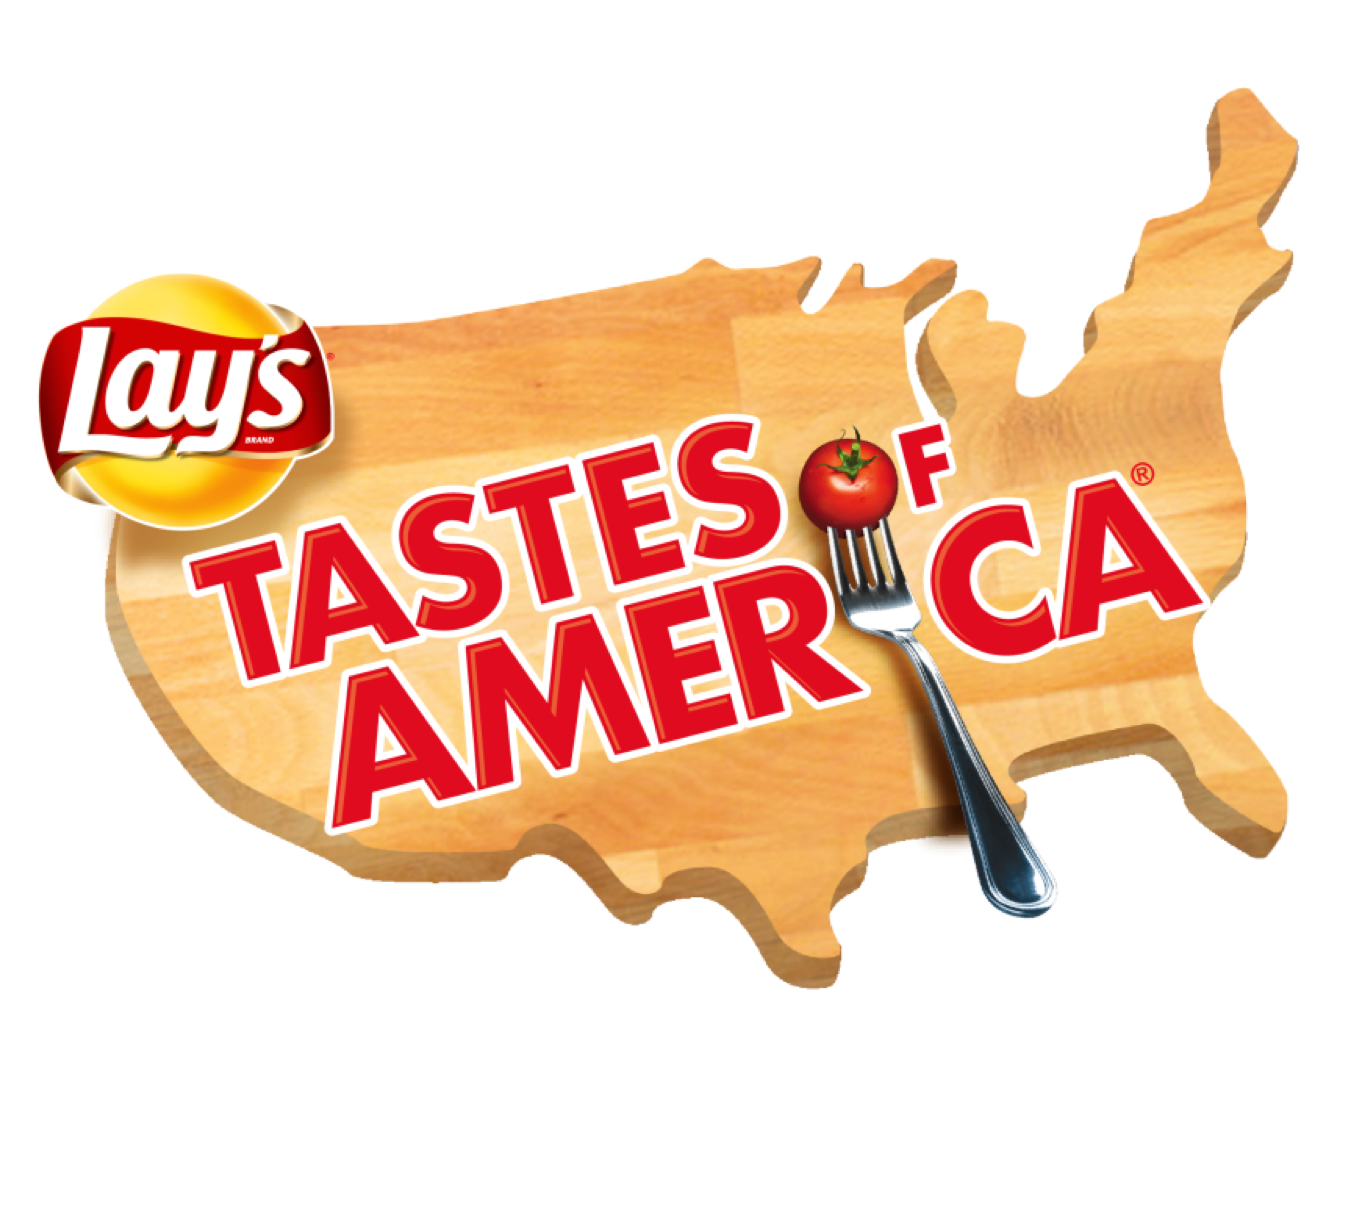 Fried-pickle potato chips? We taste tested Frito Lay's region-themed snacks